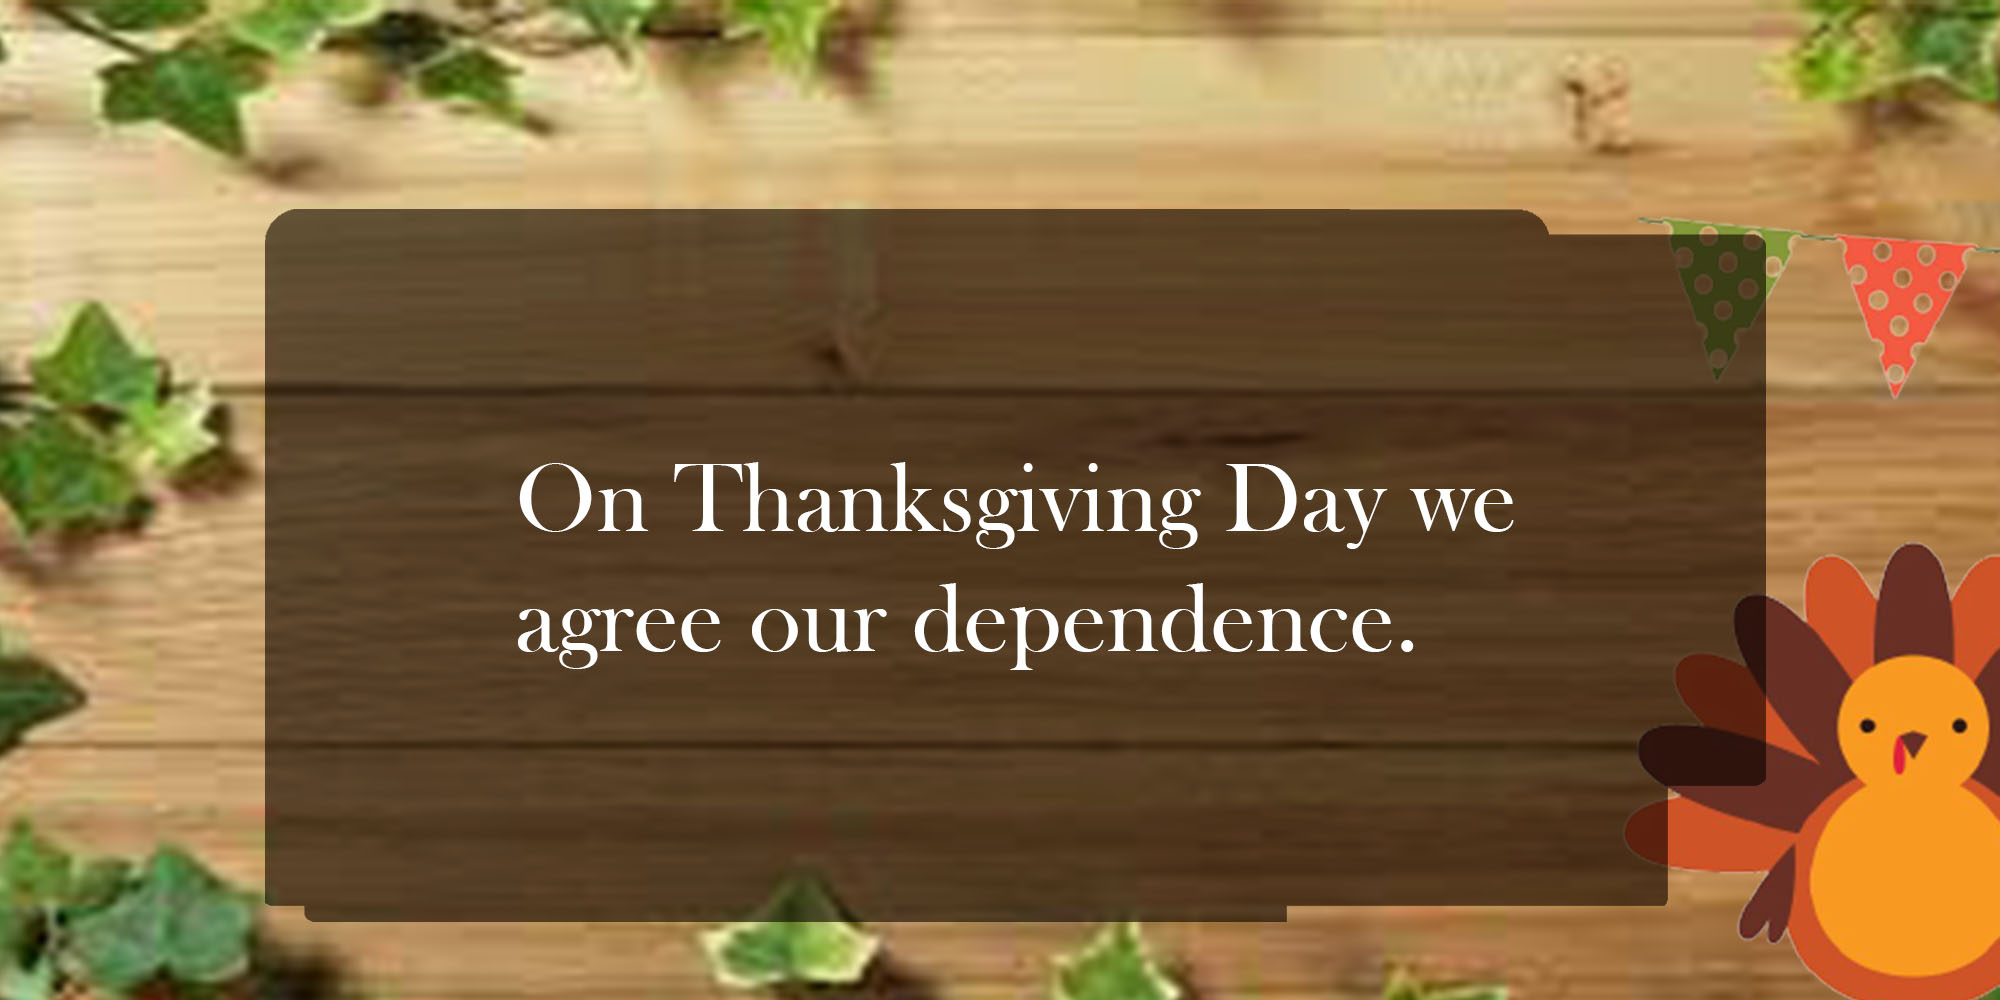 Thanksgiving Day Quotes 2021